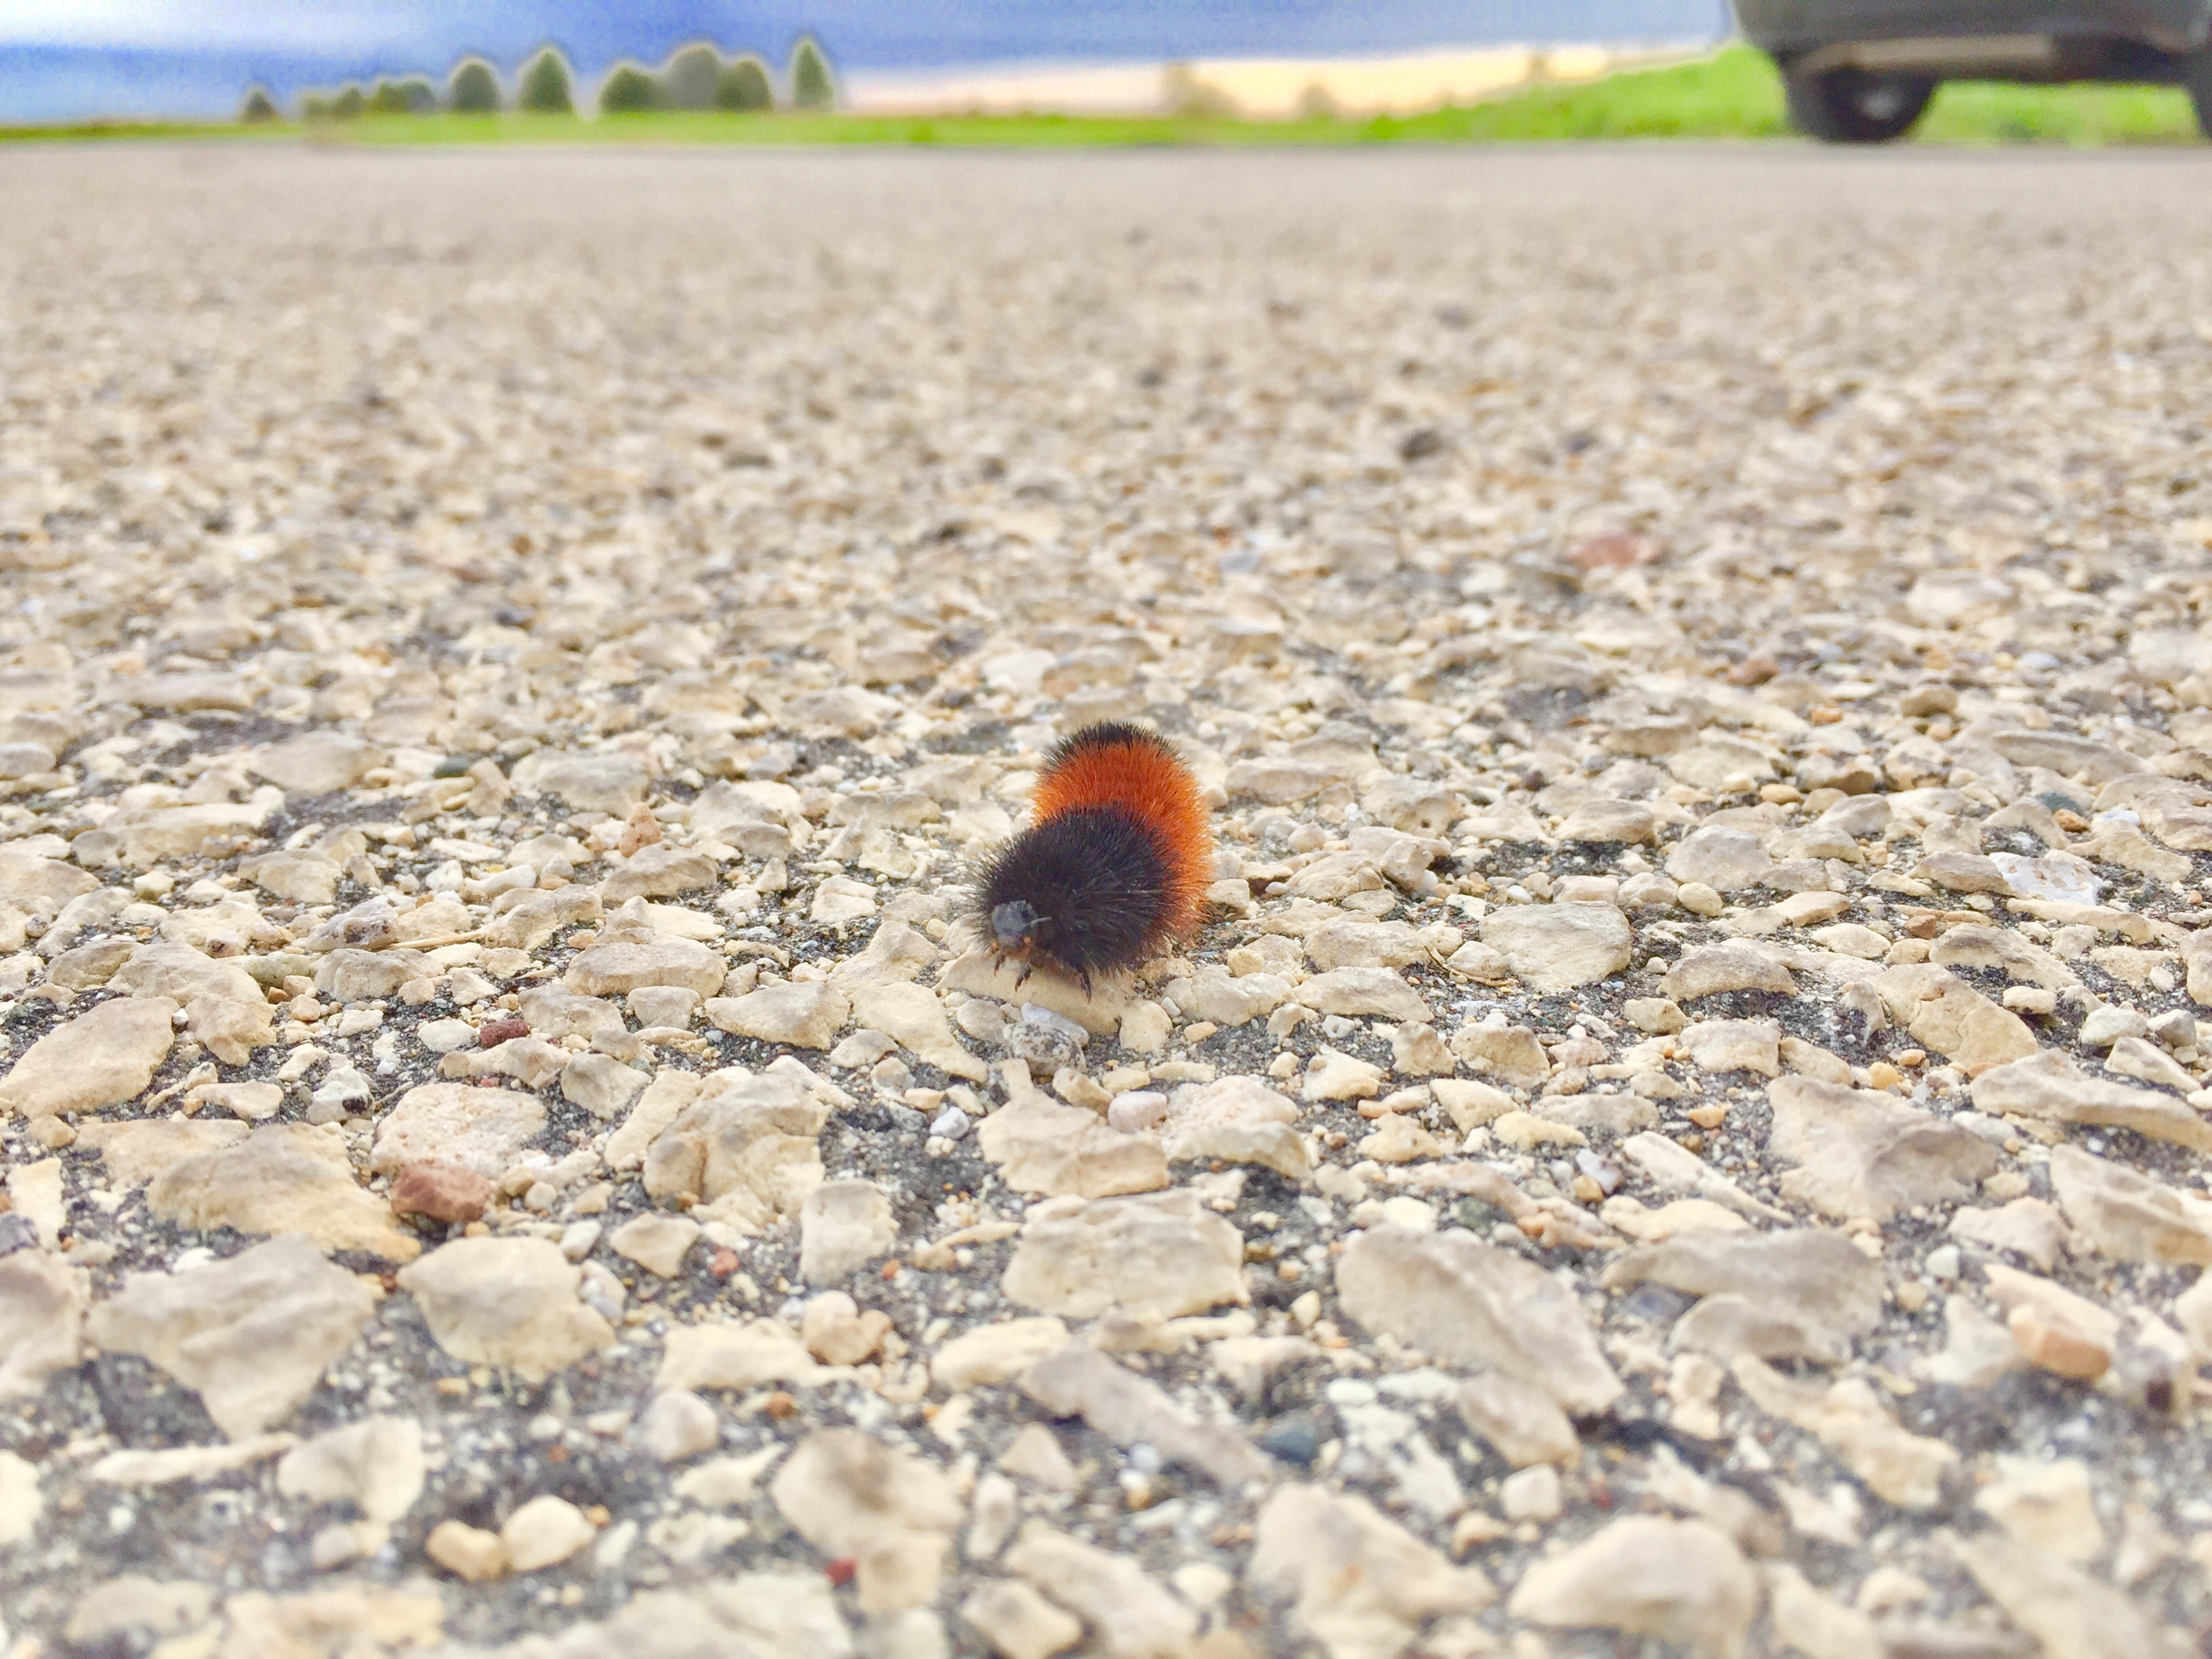 Why did the woolly bear caterpillar cross the parking lot? To find a safe spot to spend winter, that's why. In the spring it will spin a silky cocoon, and two weeks later it will metamorphose into a beautiful tiger moth. Photo: Leticia Shaddix